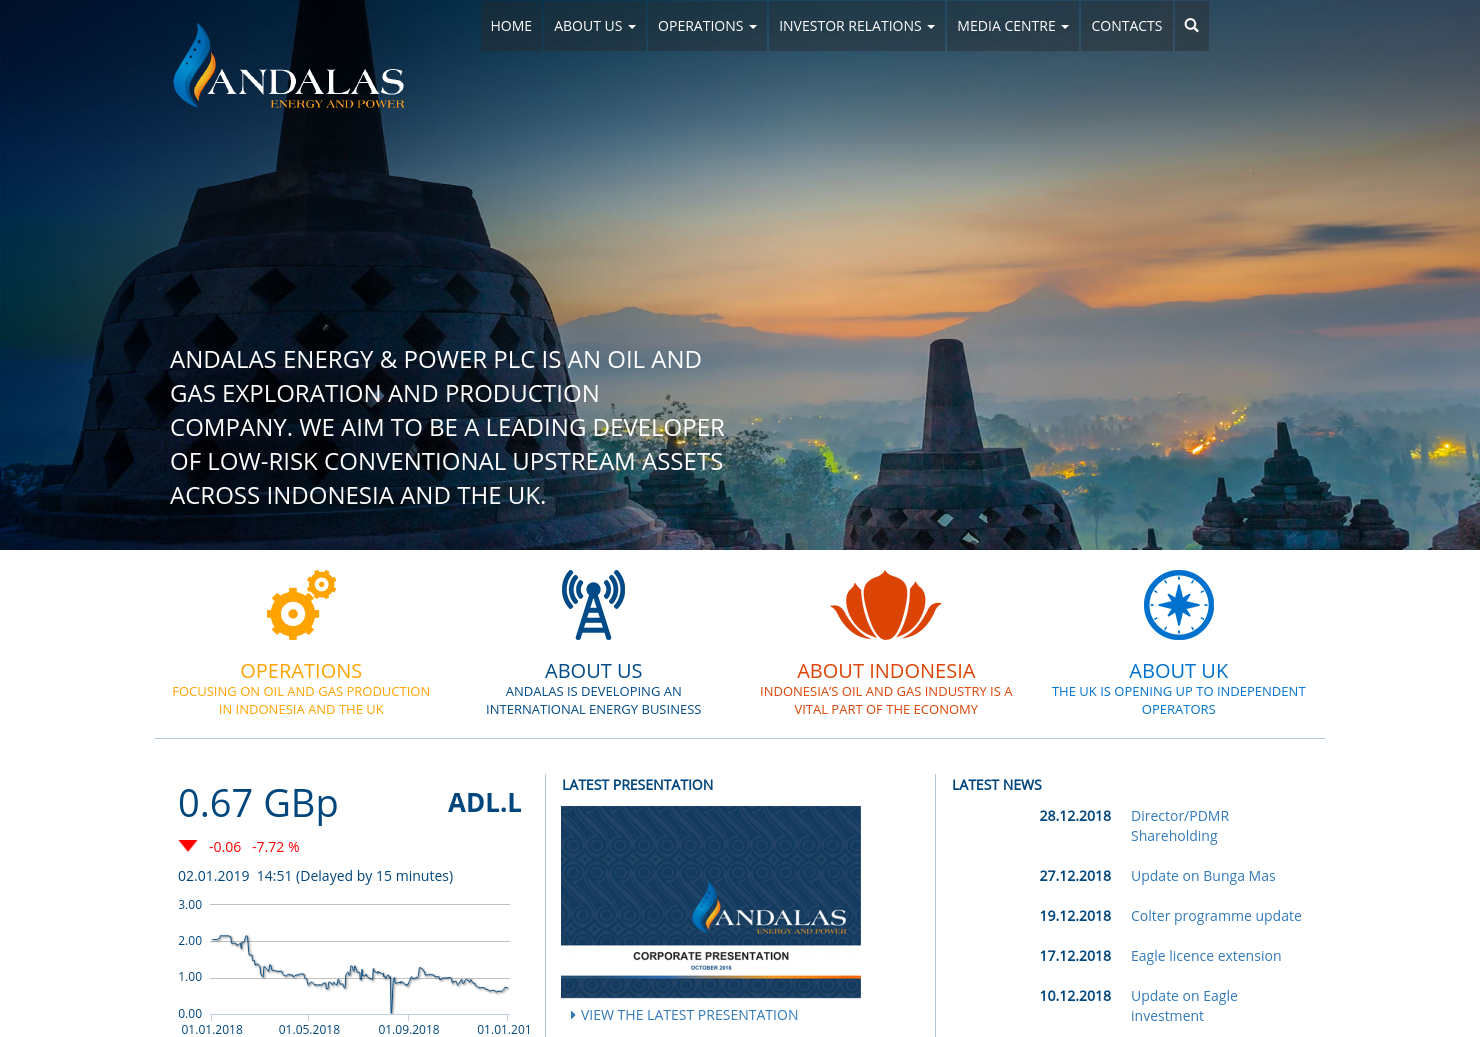 Andalas Energy & Power Home Page